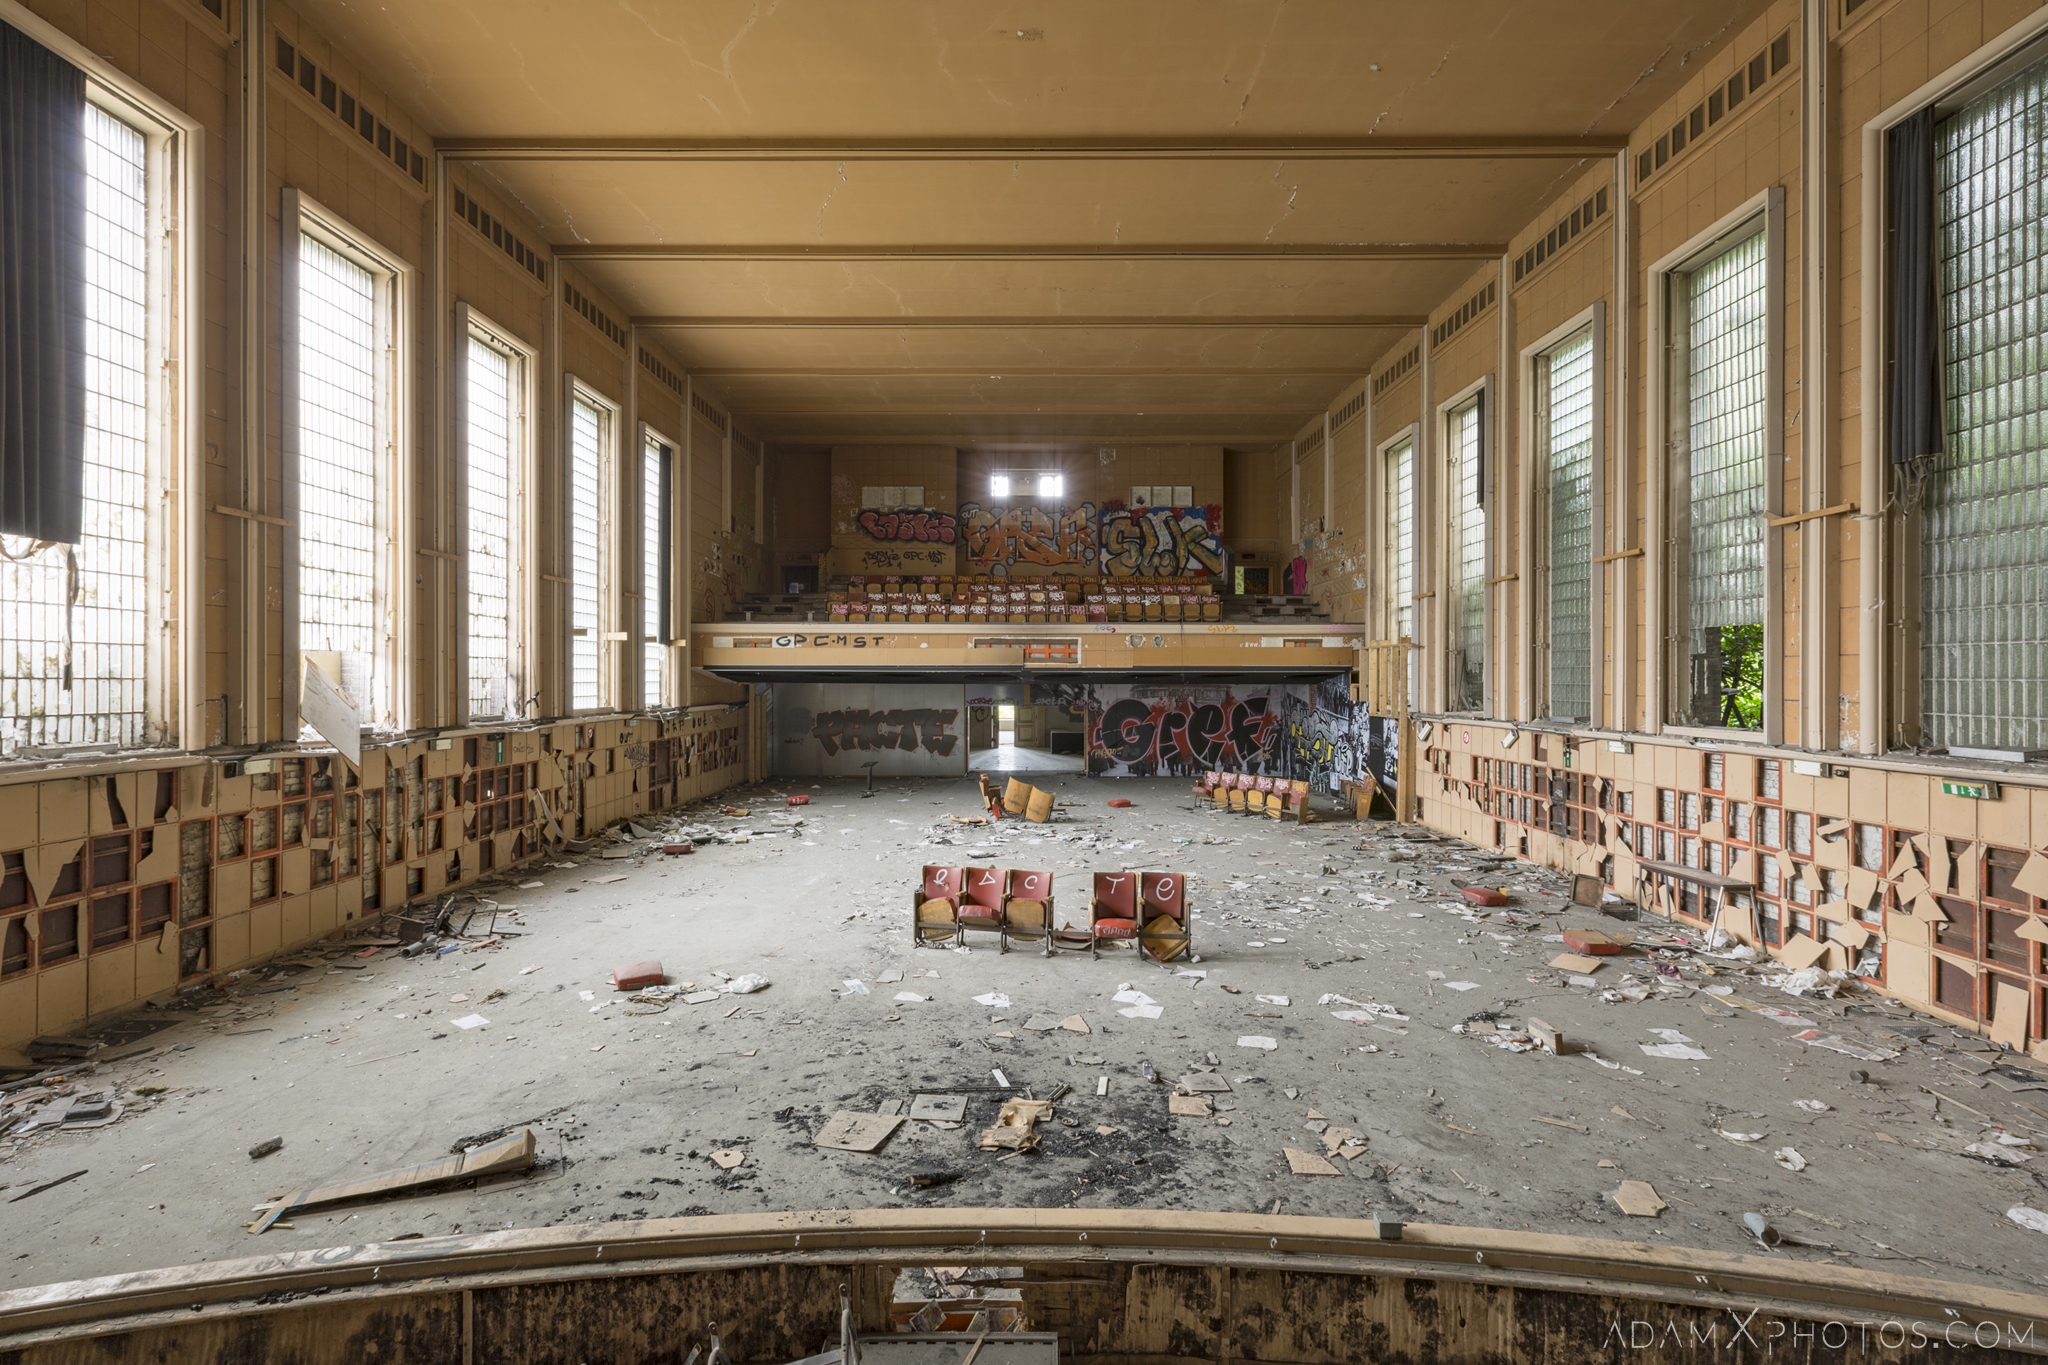 View from the stage Theatre Salle des fêtes d'Ougrée Marihayea (OM) Théâtre Jeusette Adam X Urban Exploration Belgium Access 2017 Abandoned decay lost forgotten derelict location creepy haunting eerie